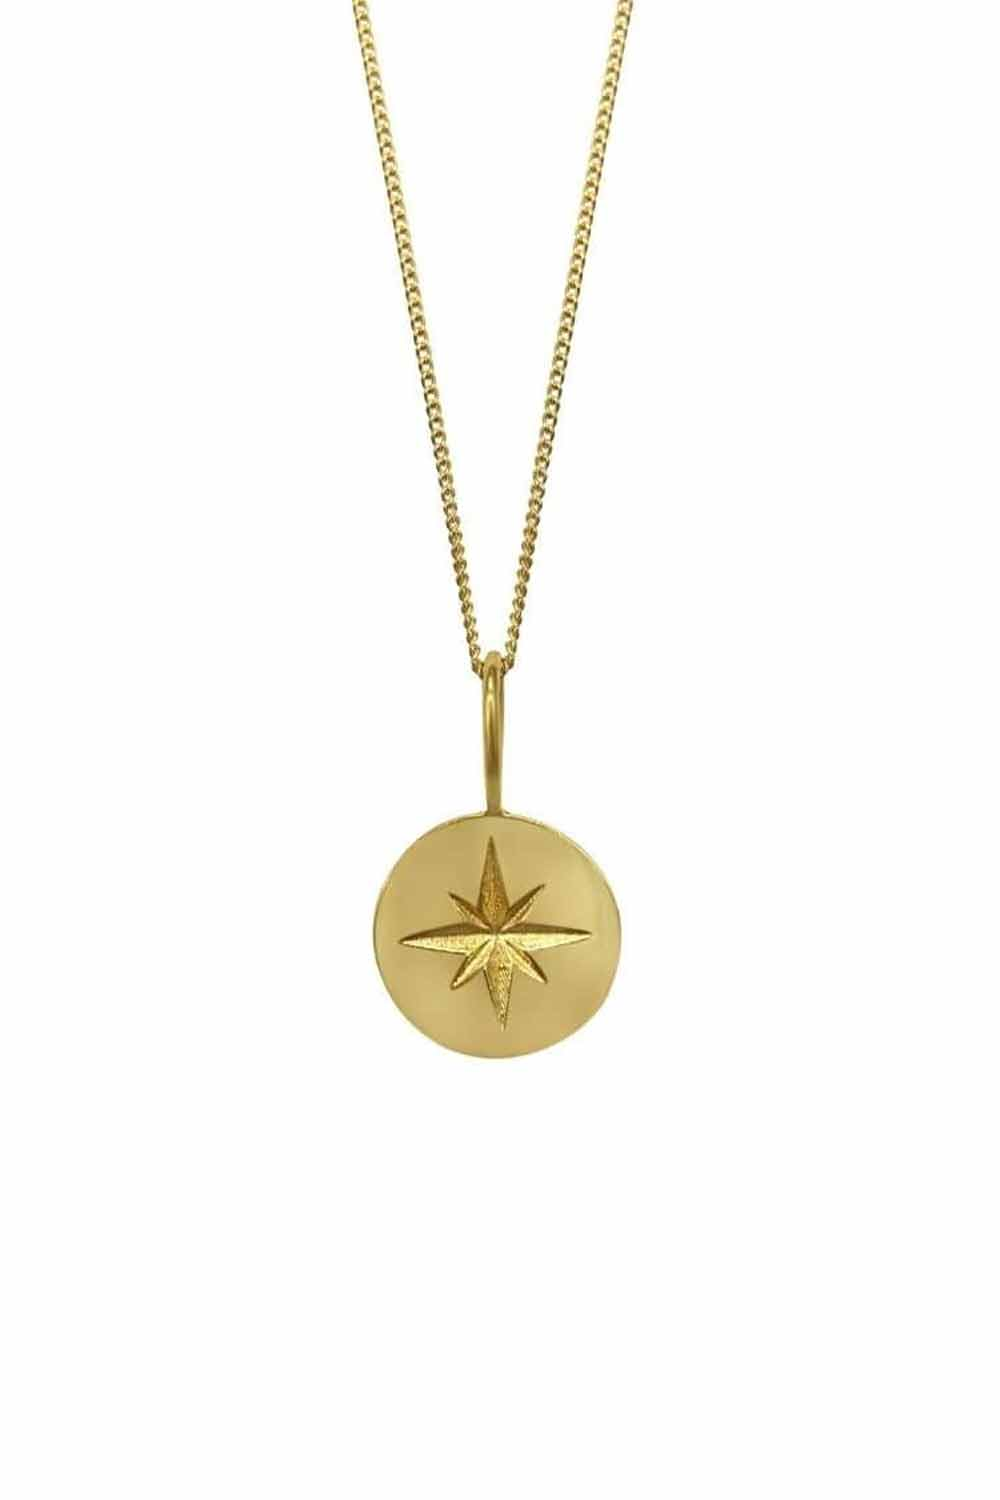 Bonito Jewelry ~ Budapest Star Necklace in Gold